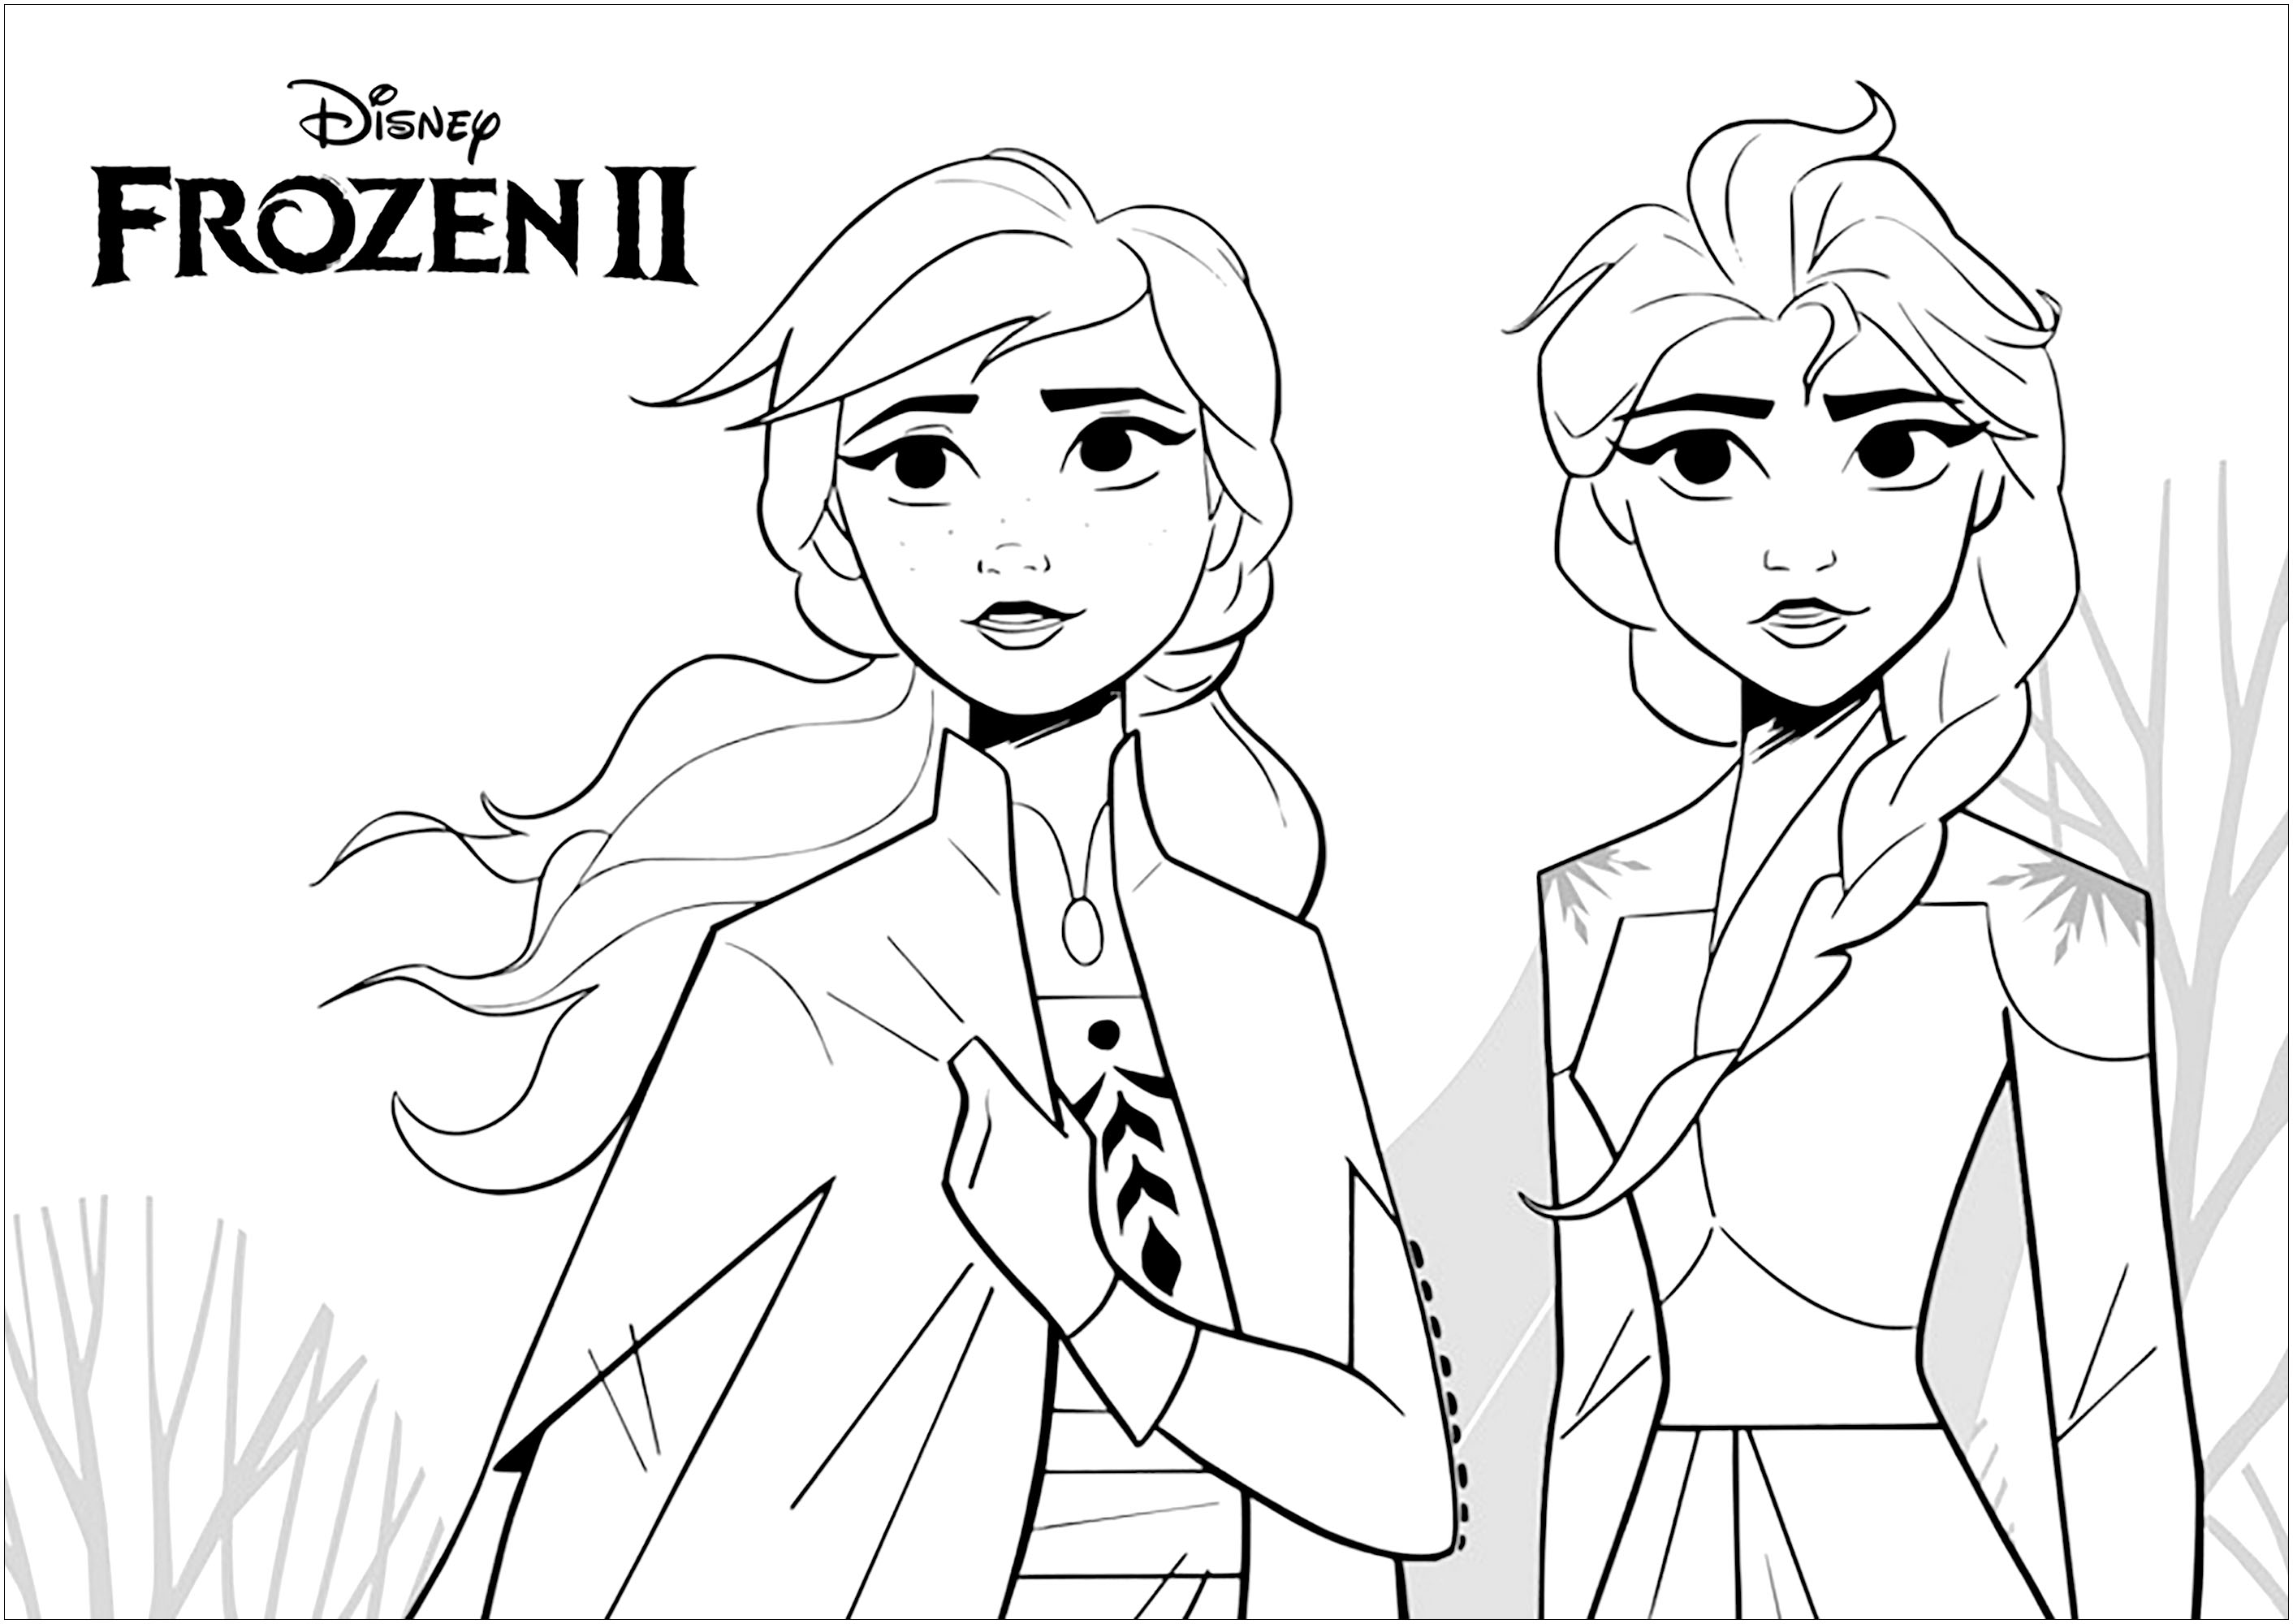 coloring pages to print frozen frozen 2 for kids frozen 2 kids coloring pages pages coloring to print frozen